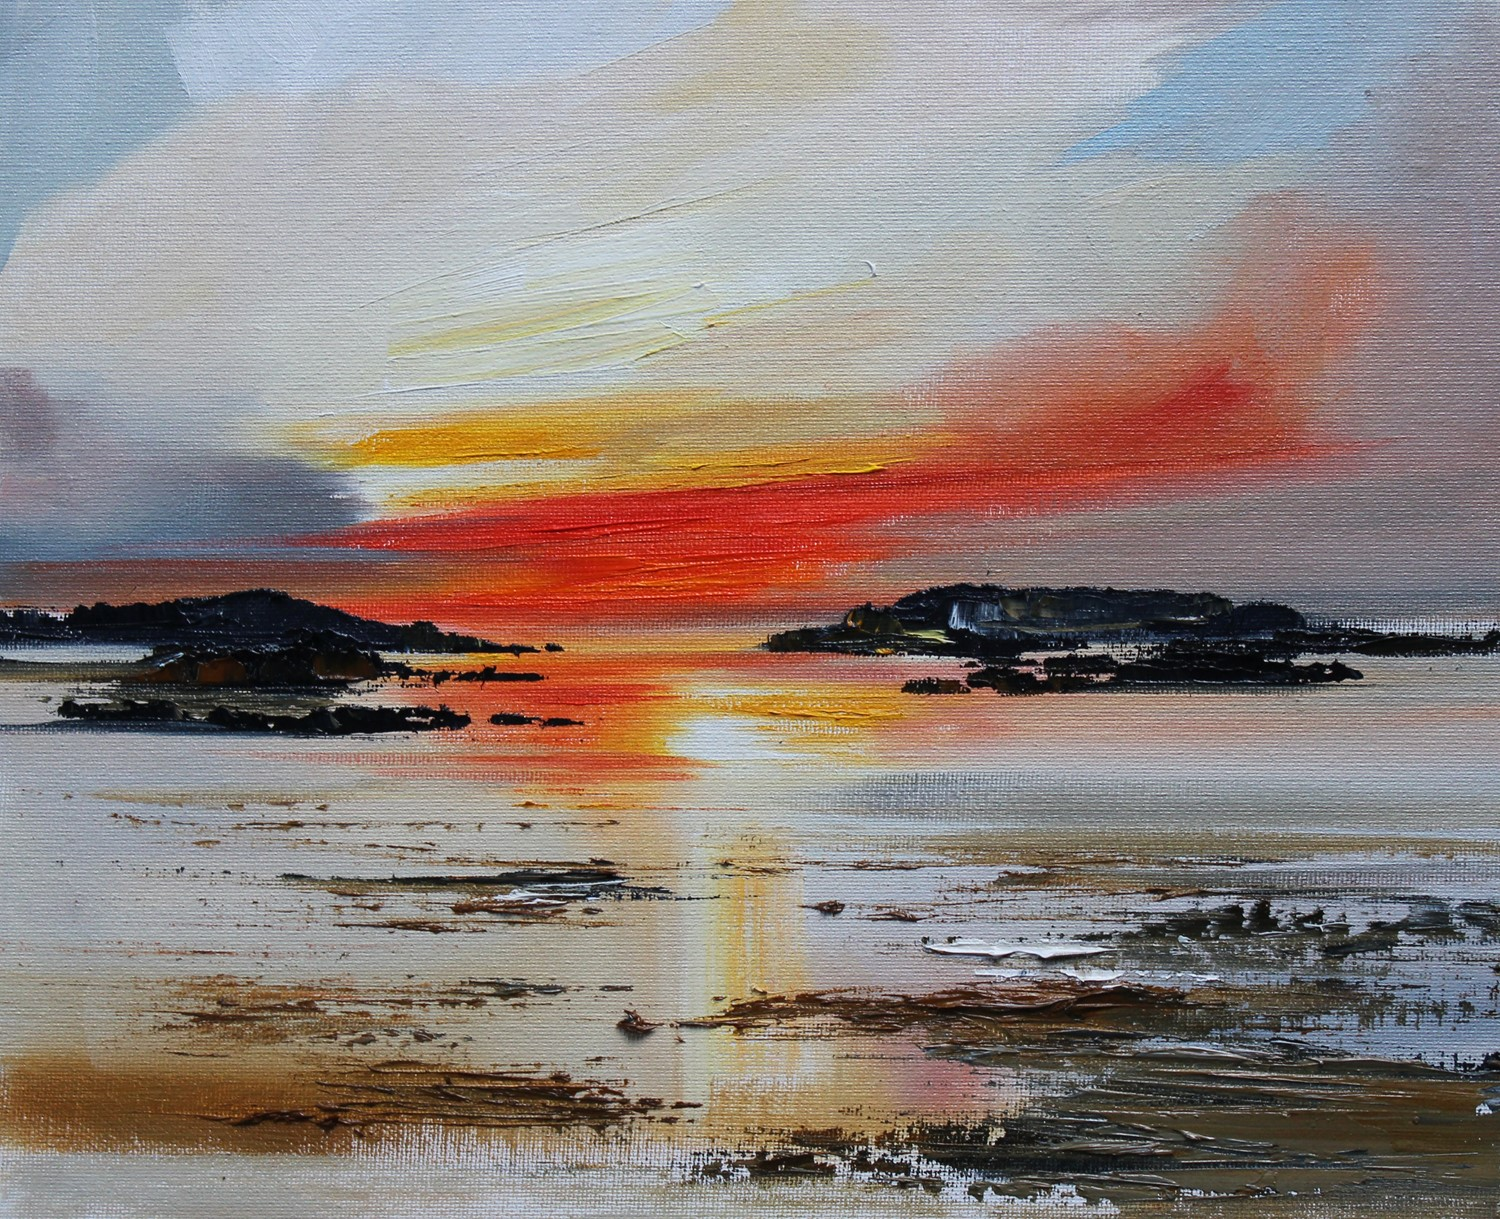 'Sunset across the Water ' by artist Rosanne Barr